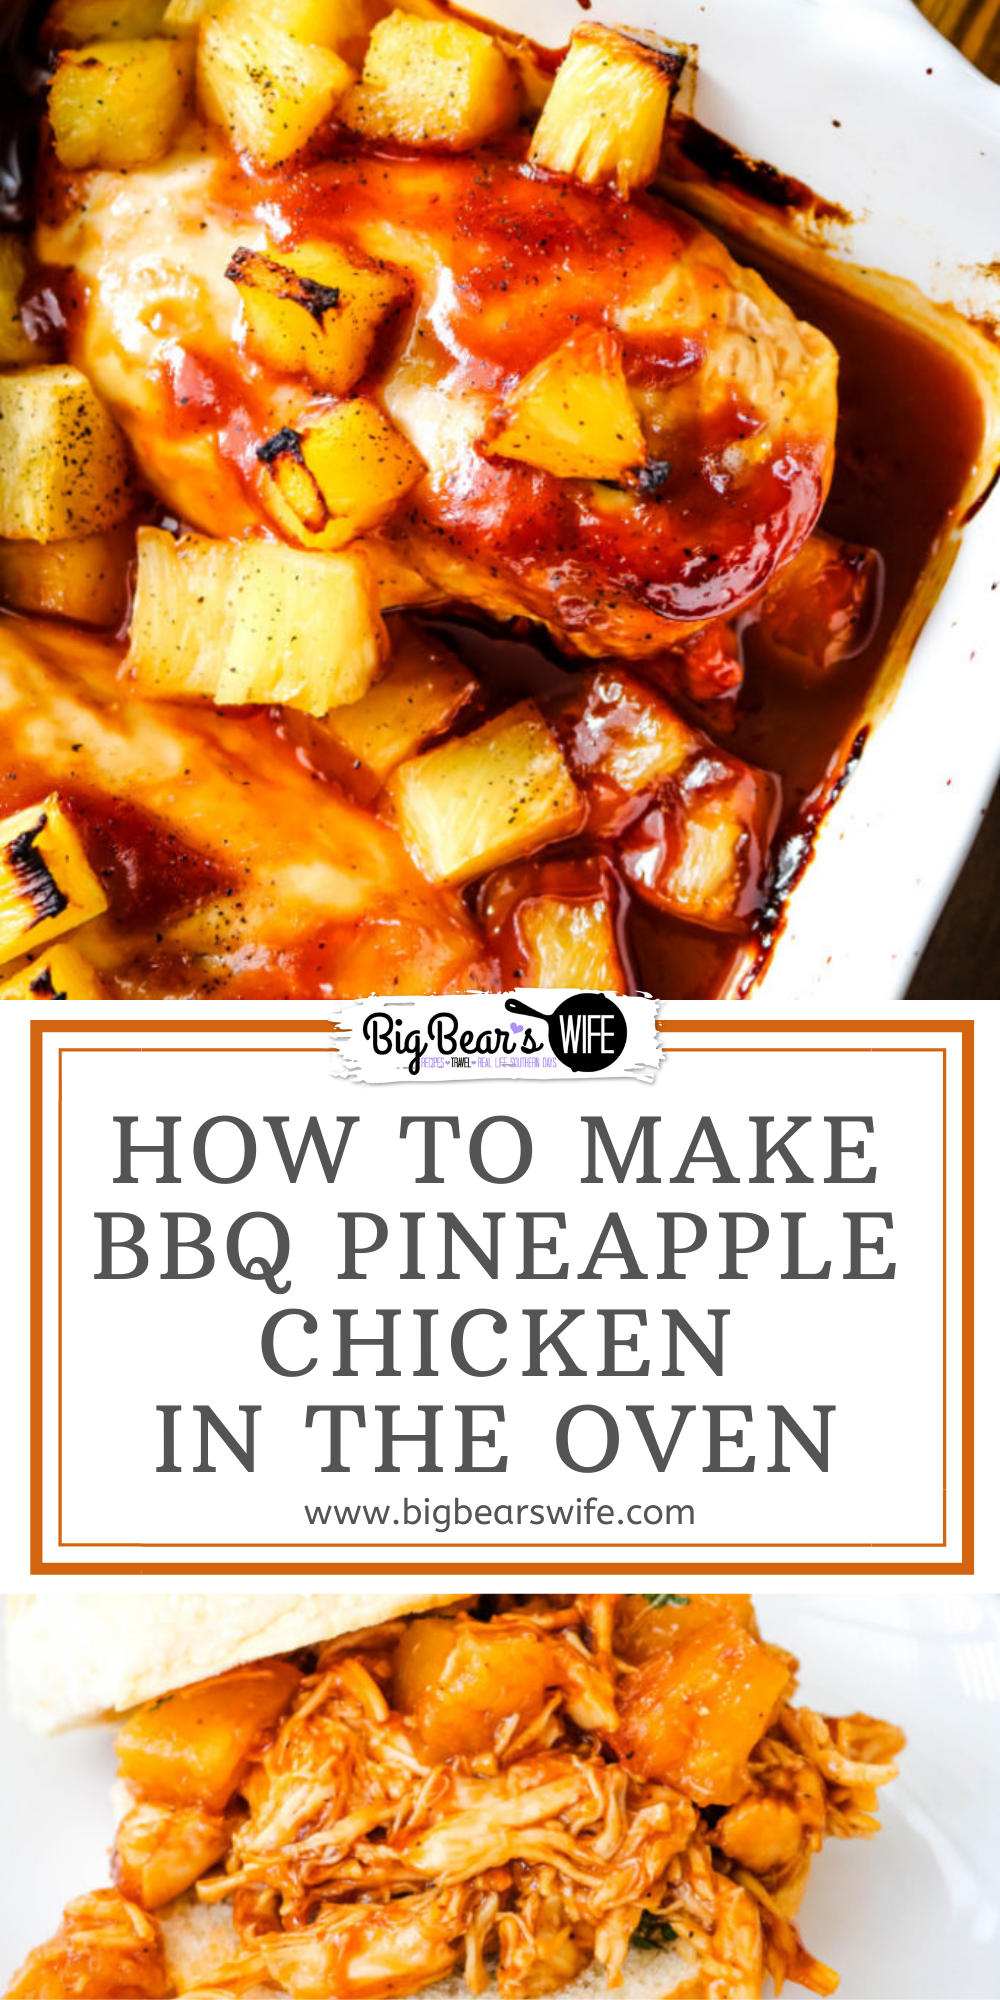 Learn how to make Pineapple BBQ Chicken in the oven! It's perfect as a main dish and also great to shred for Chicken sandwiches and tacos! Leave out the pineapple and it's the perfect Oven baked BBQ chicken.  via @bigbearswife